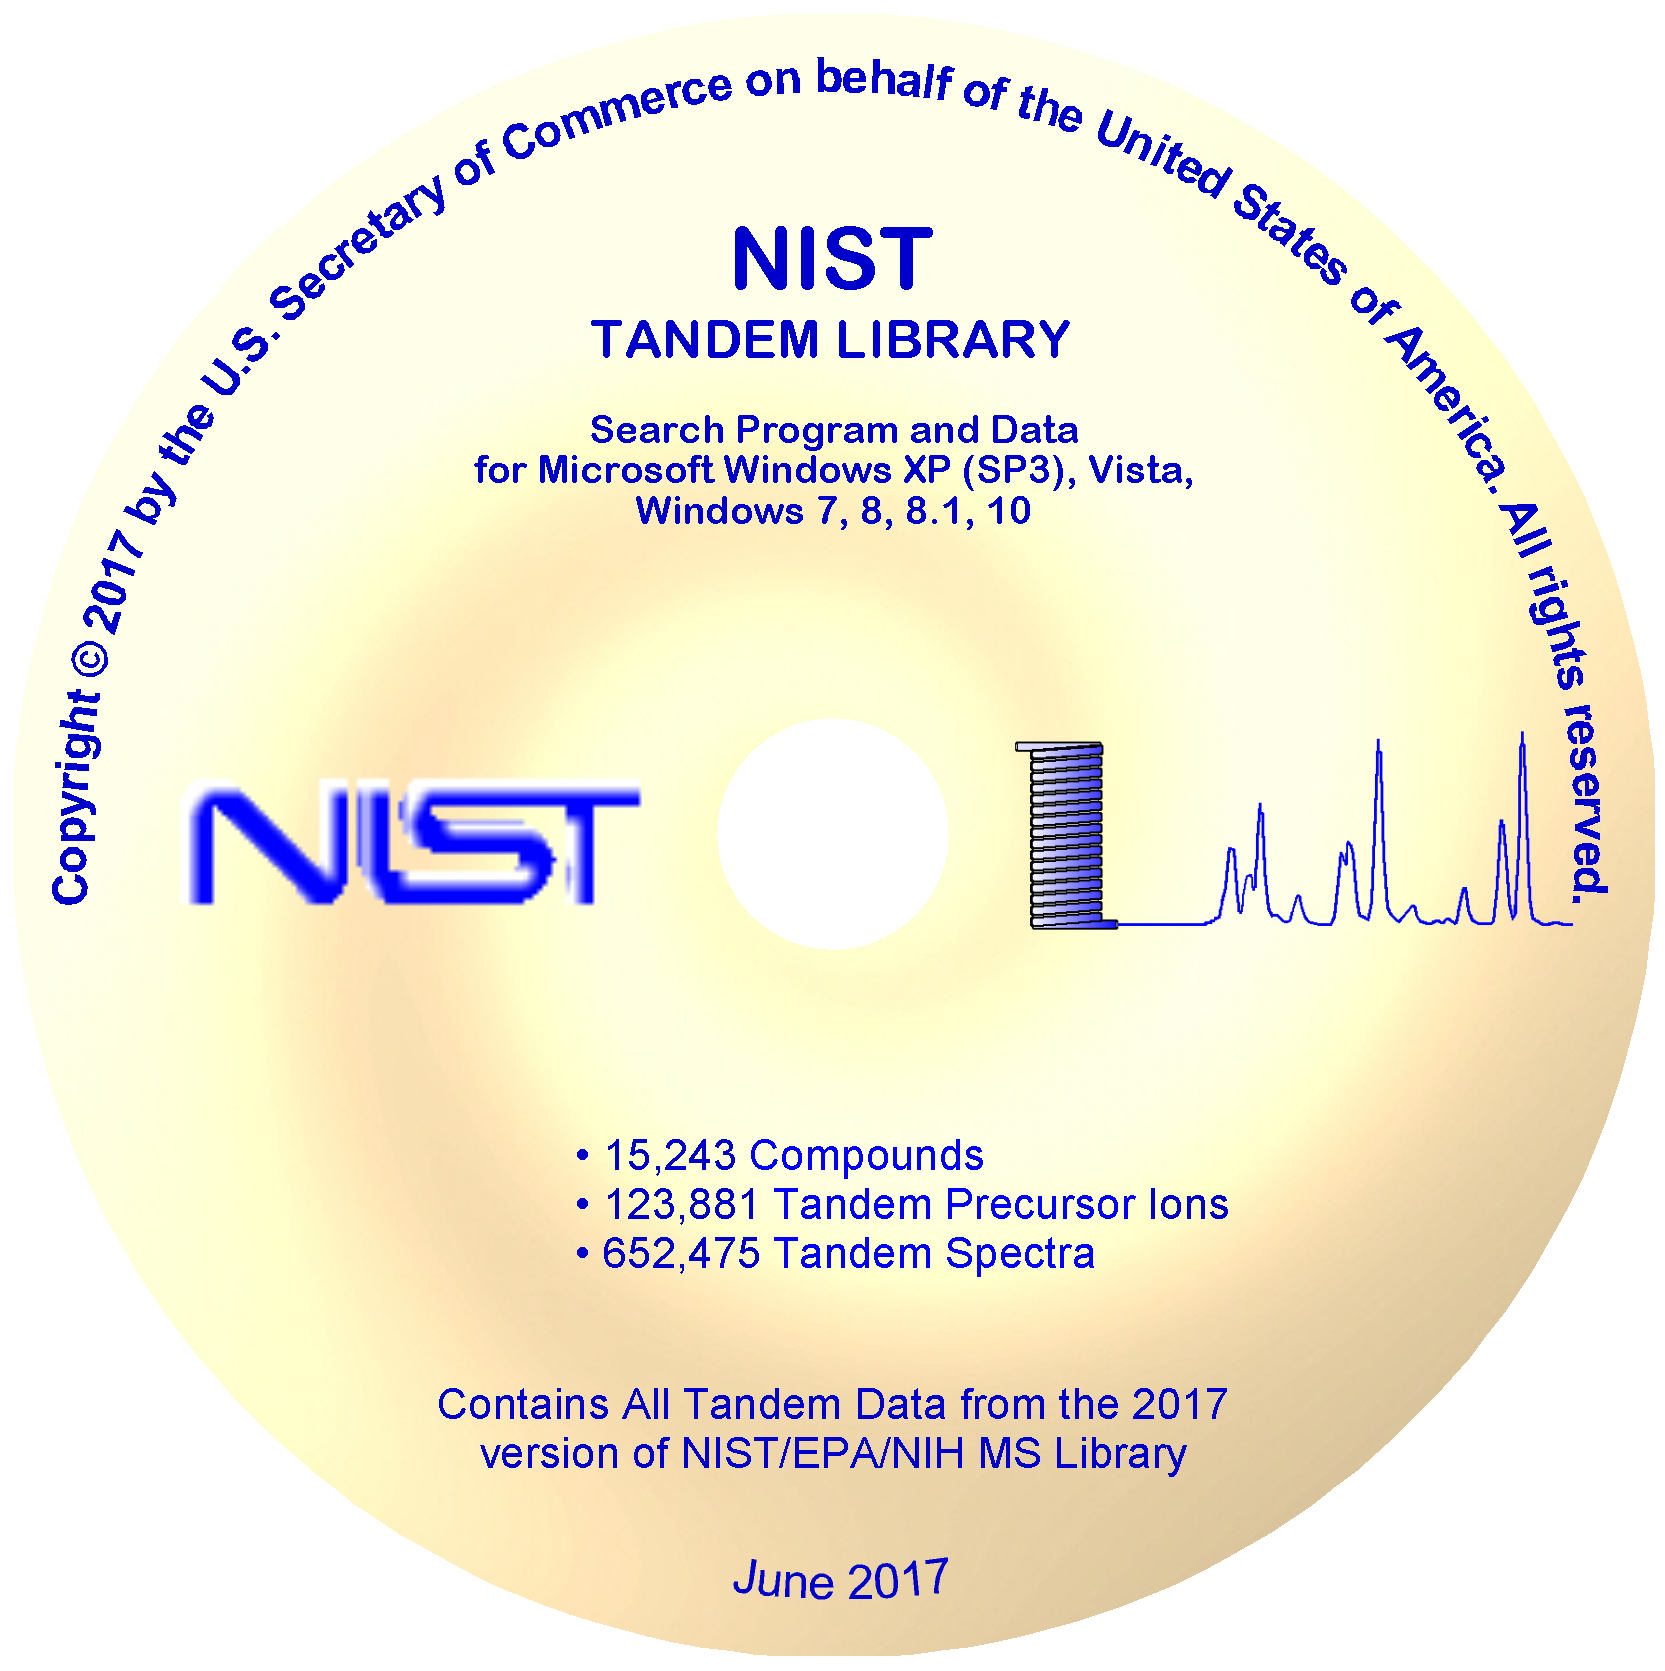 NIST17 Tandem (MS/MS) Library